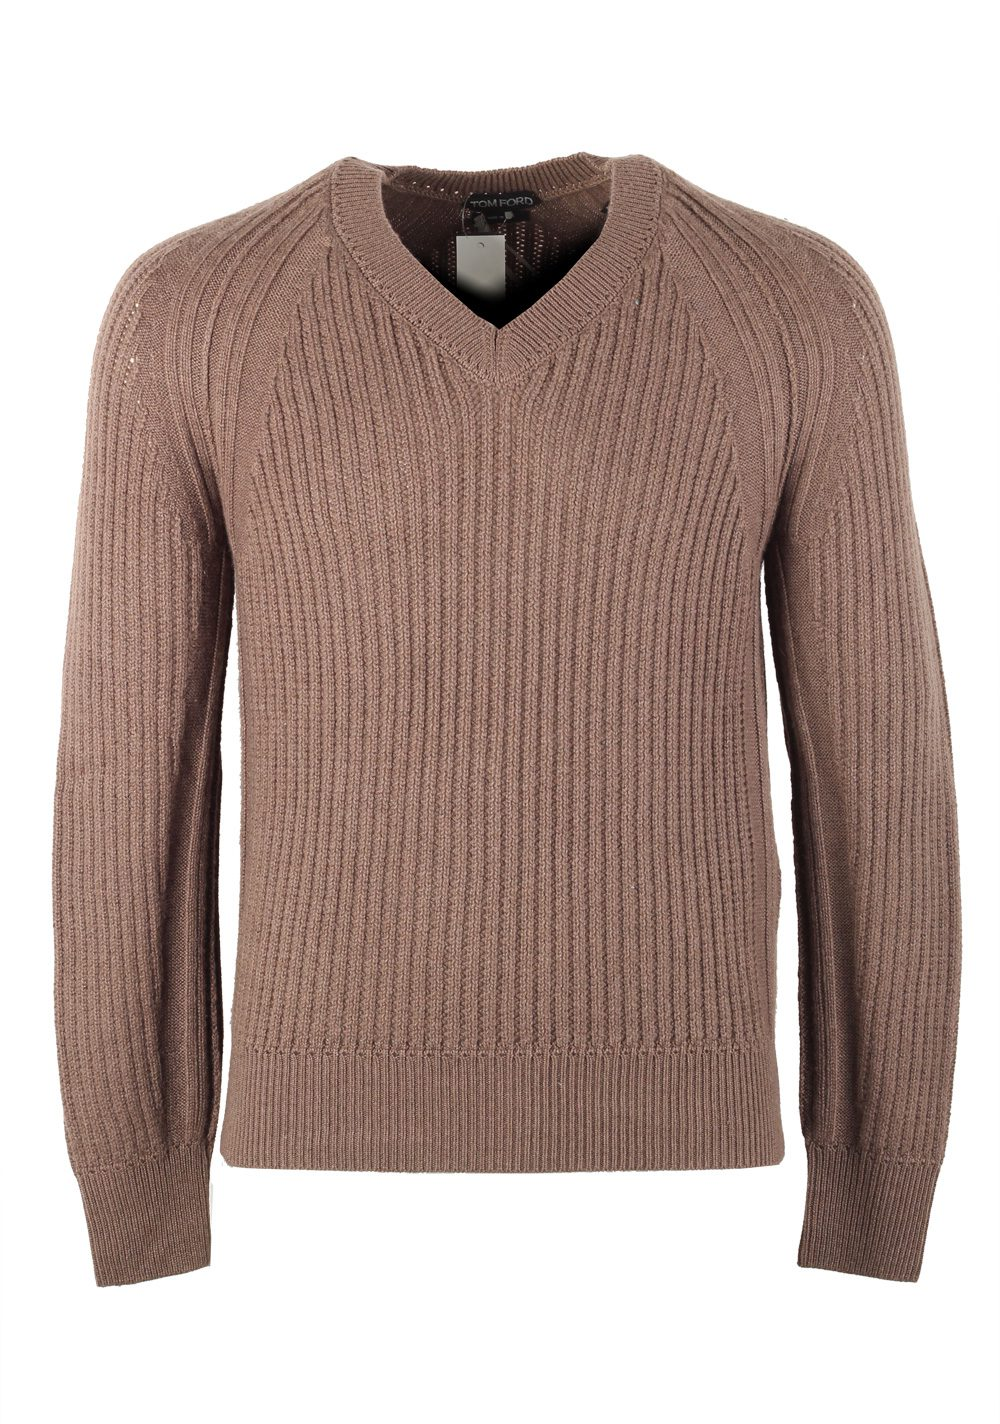 TOM FORD Brown V Neck Sweater Size 48 / 38R U.S. In Cashmere Silk | Costume Limité